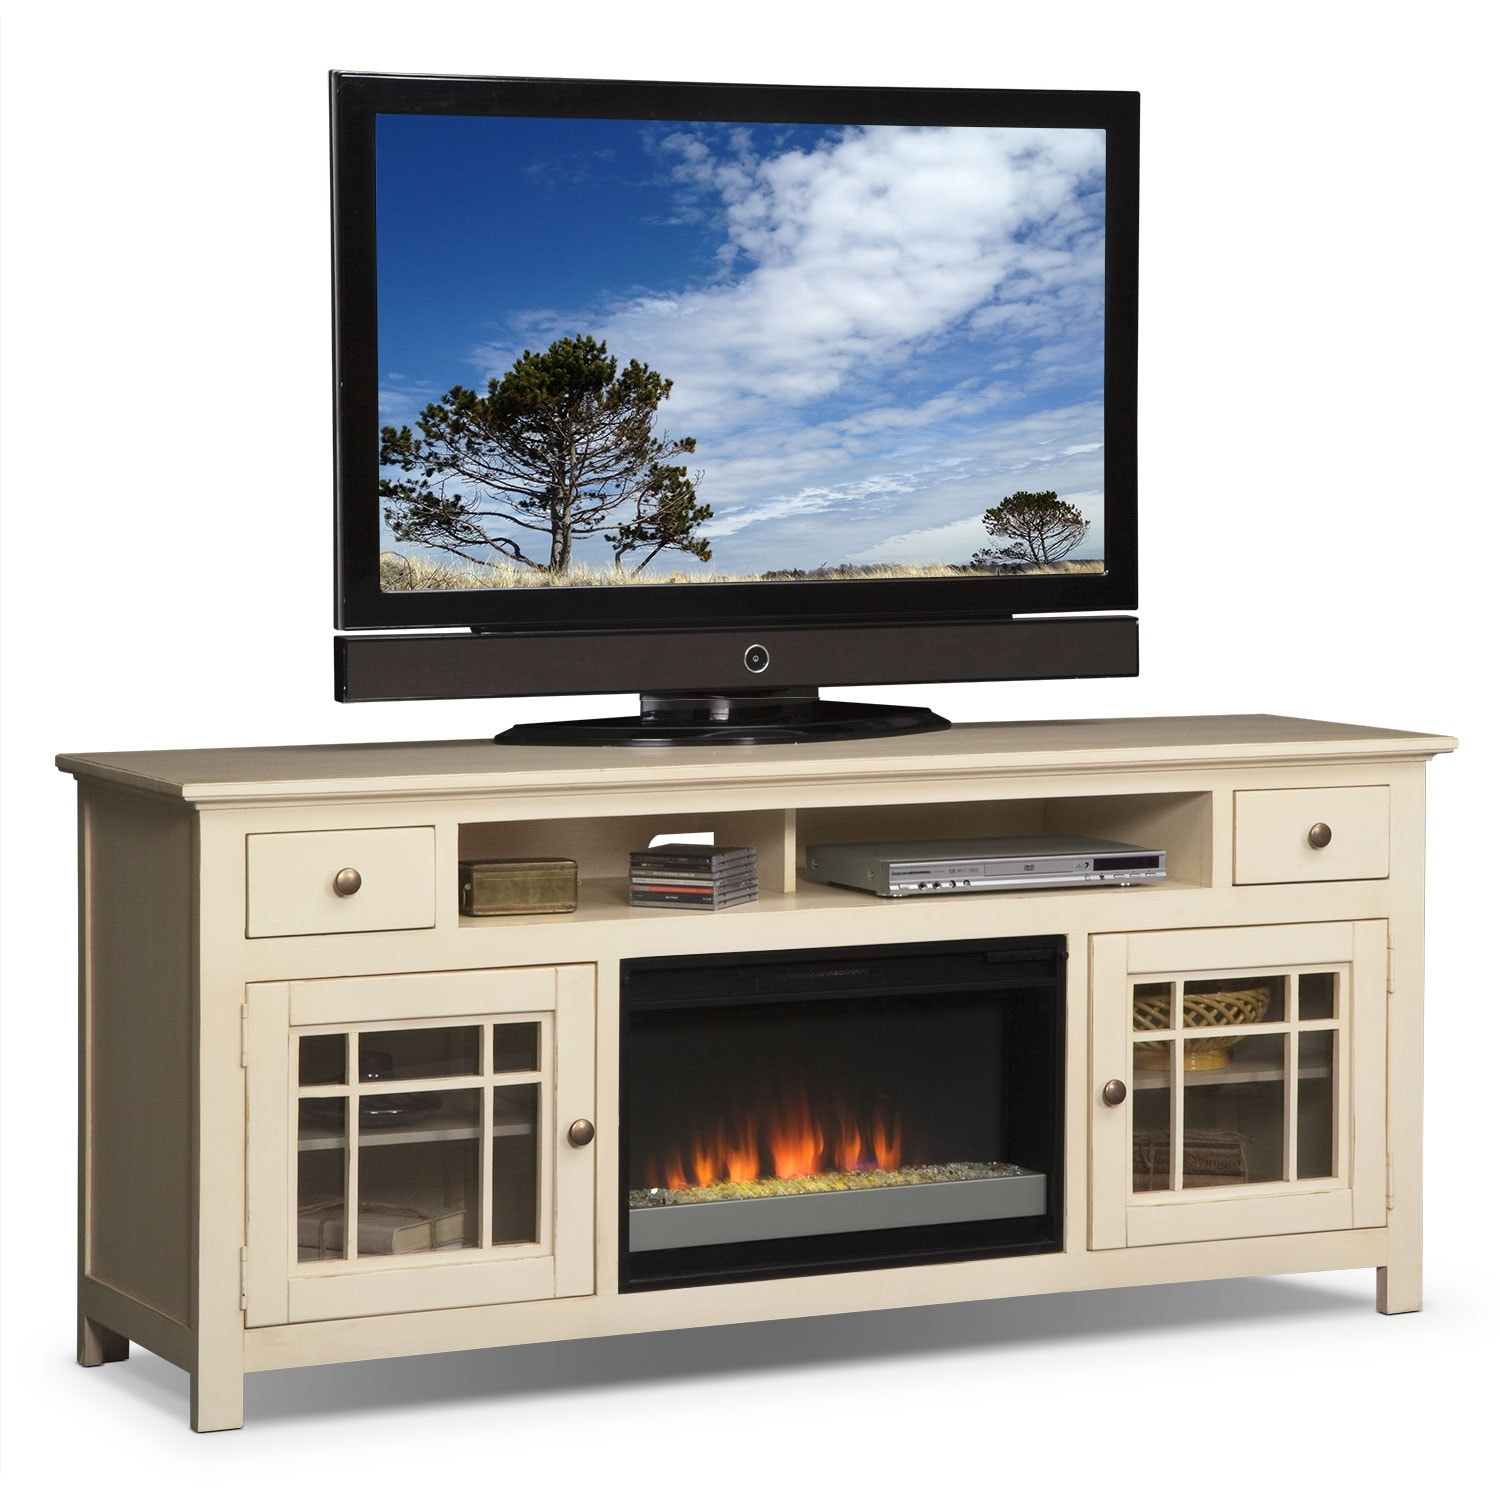 brown superb home wooden co groovy heater for also stand boy tv distinguished and ga isabel electric darby sparkling fireplace white